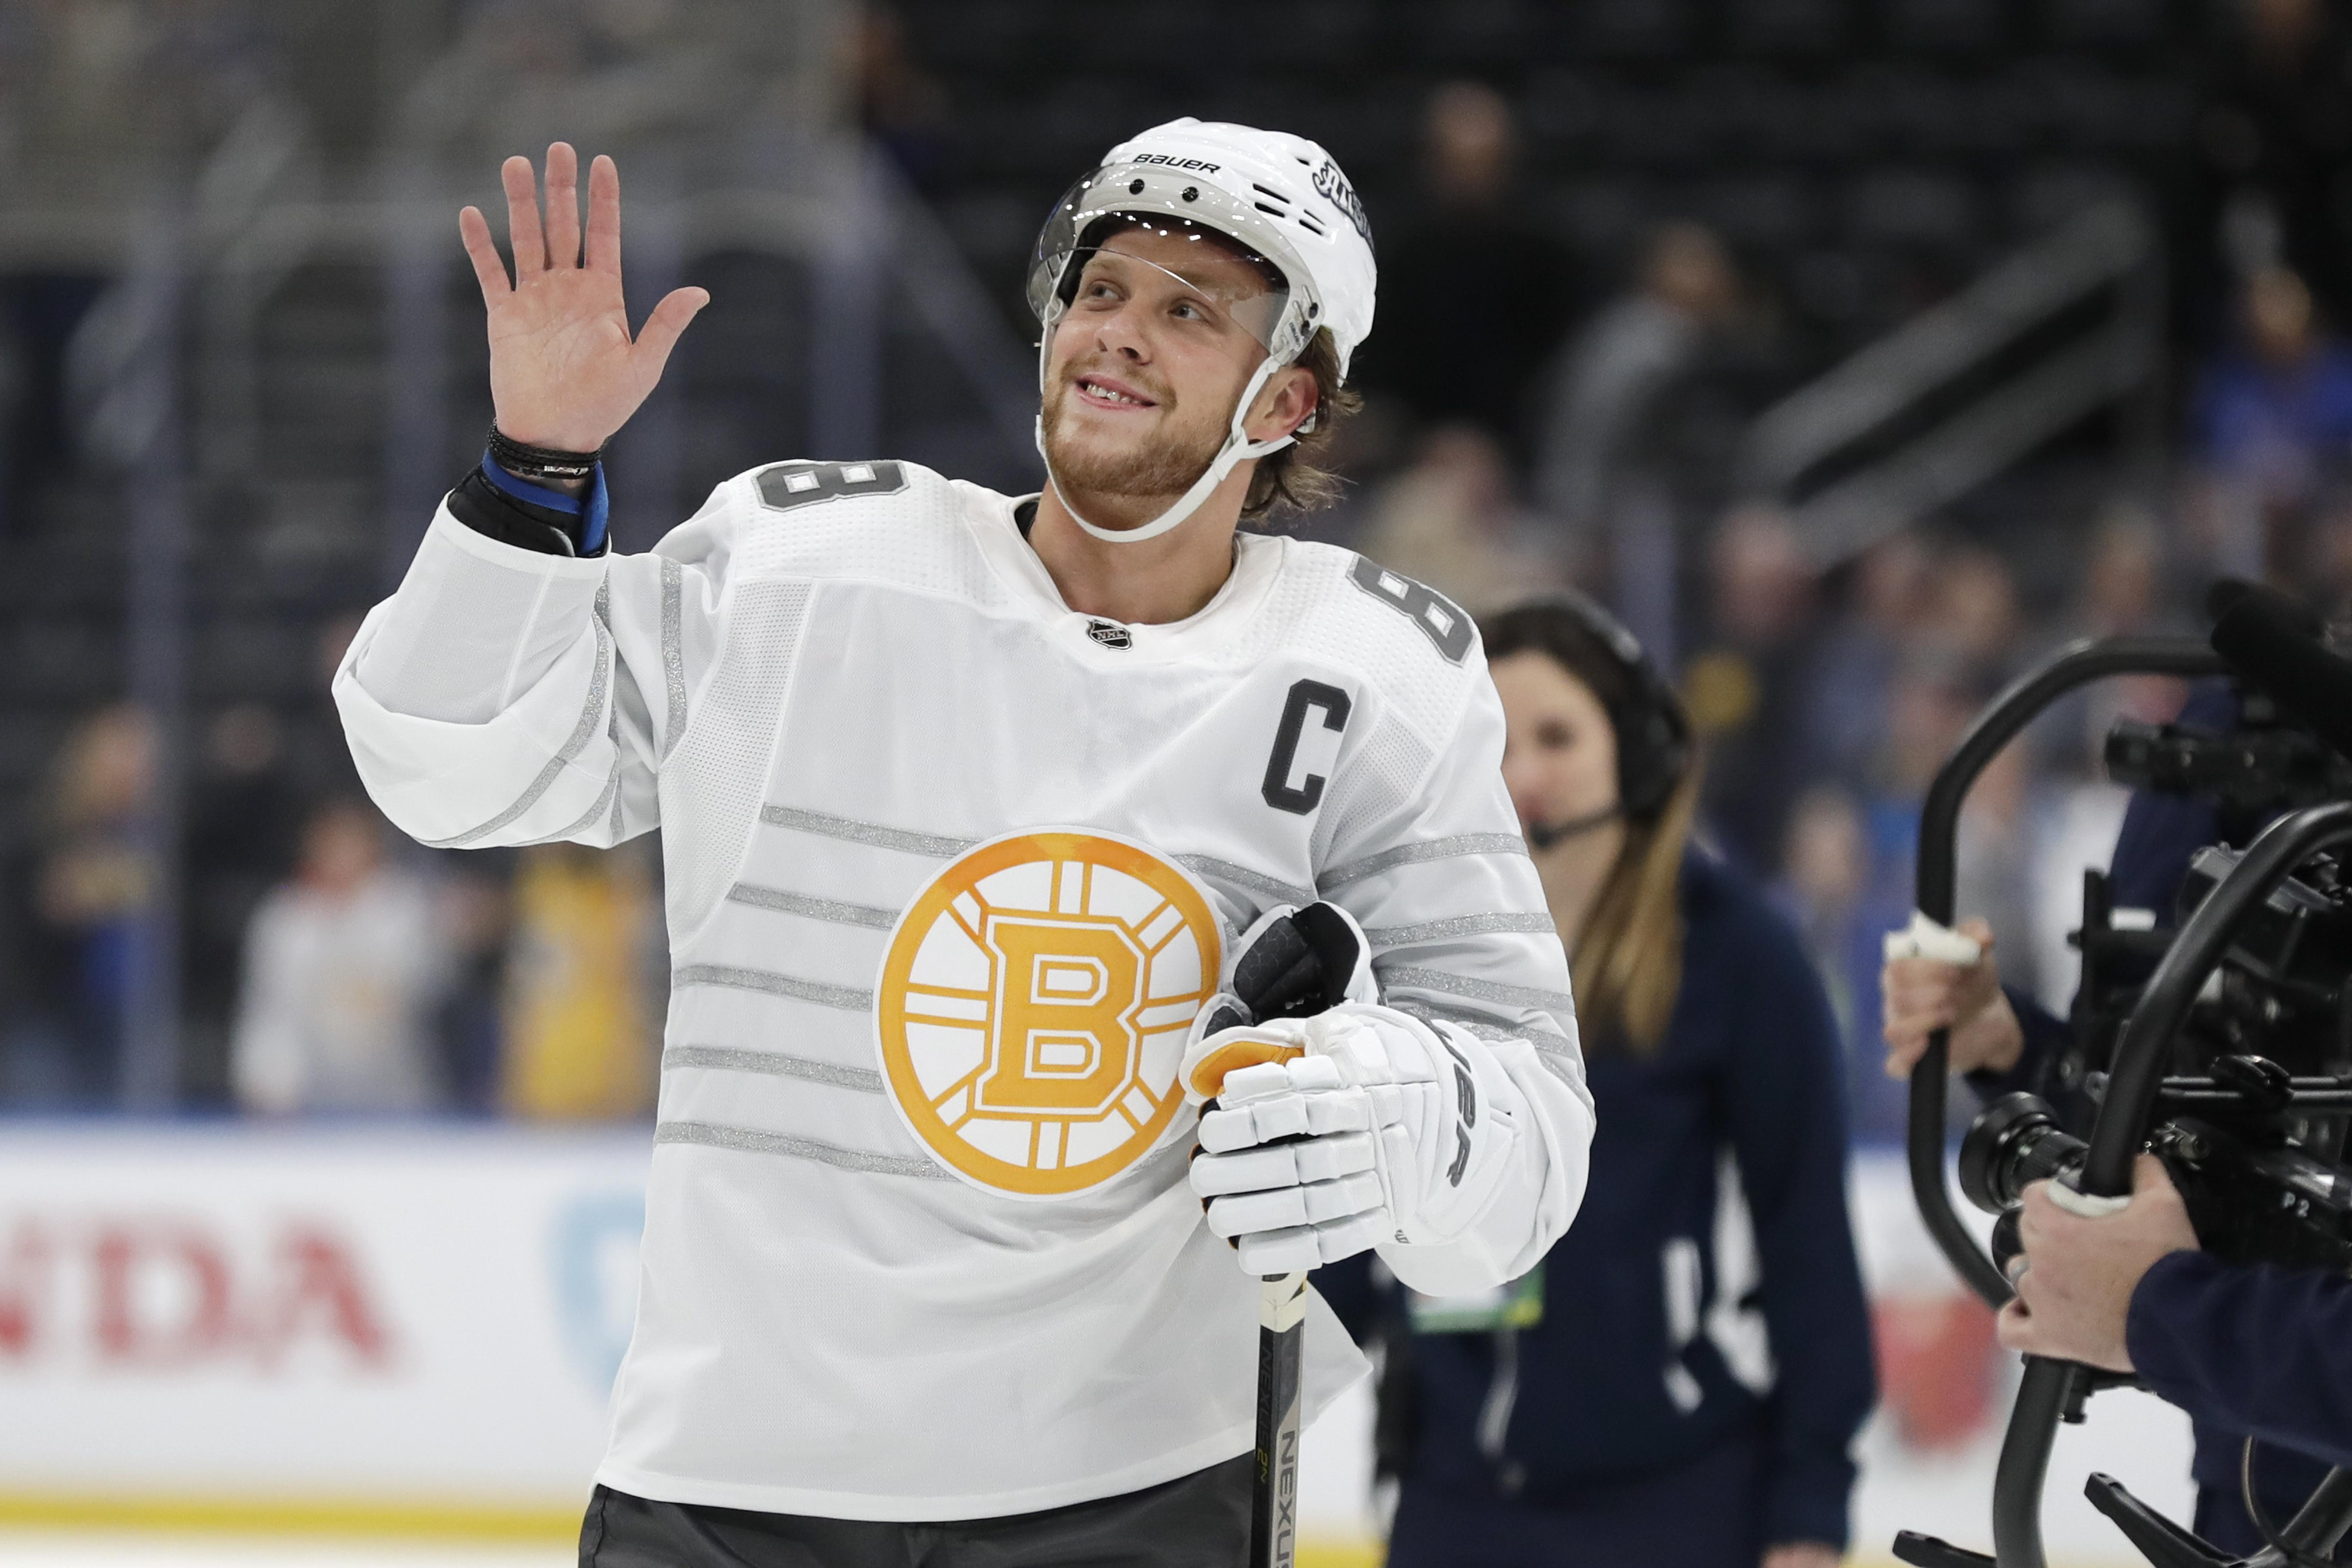 Laila Anderson introduces Blues players at 2020 NHL All-Star Game